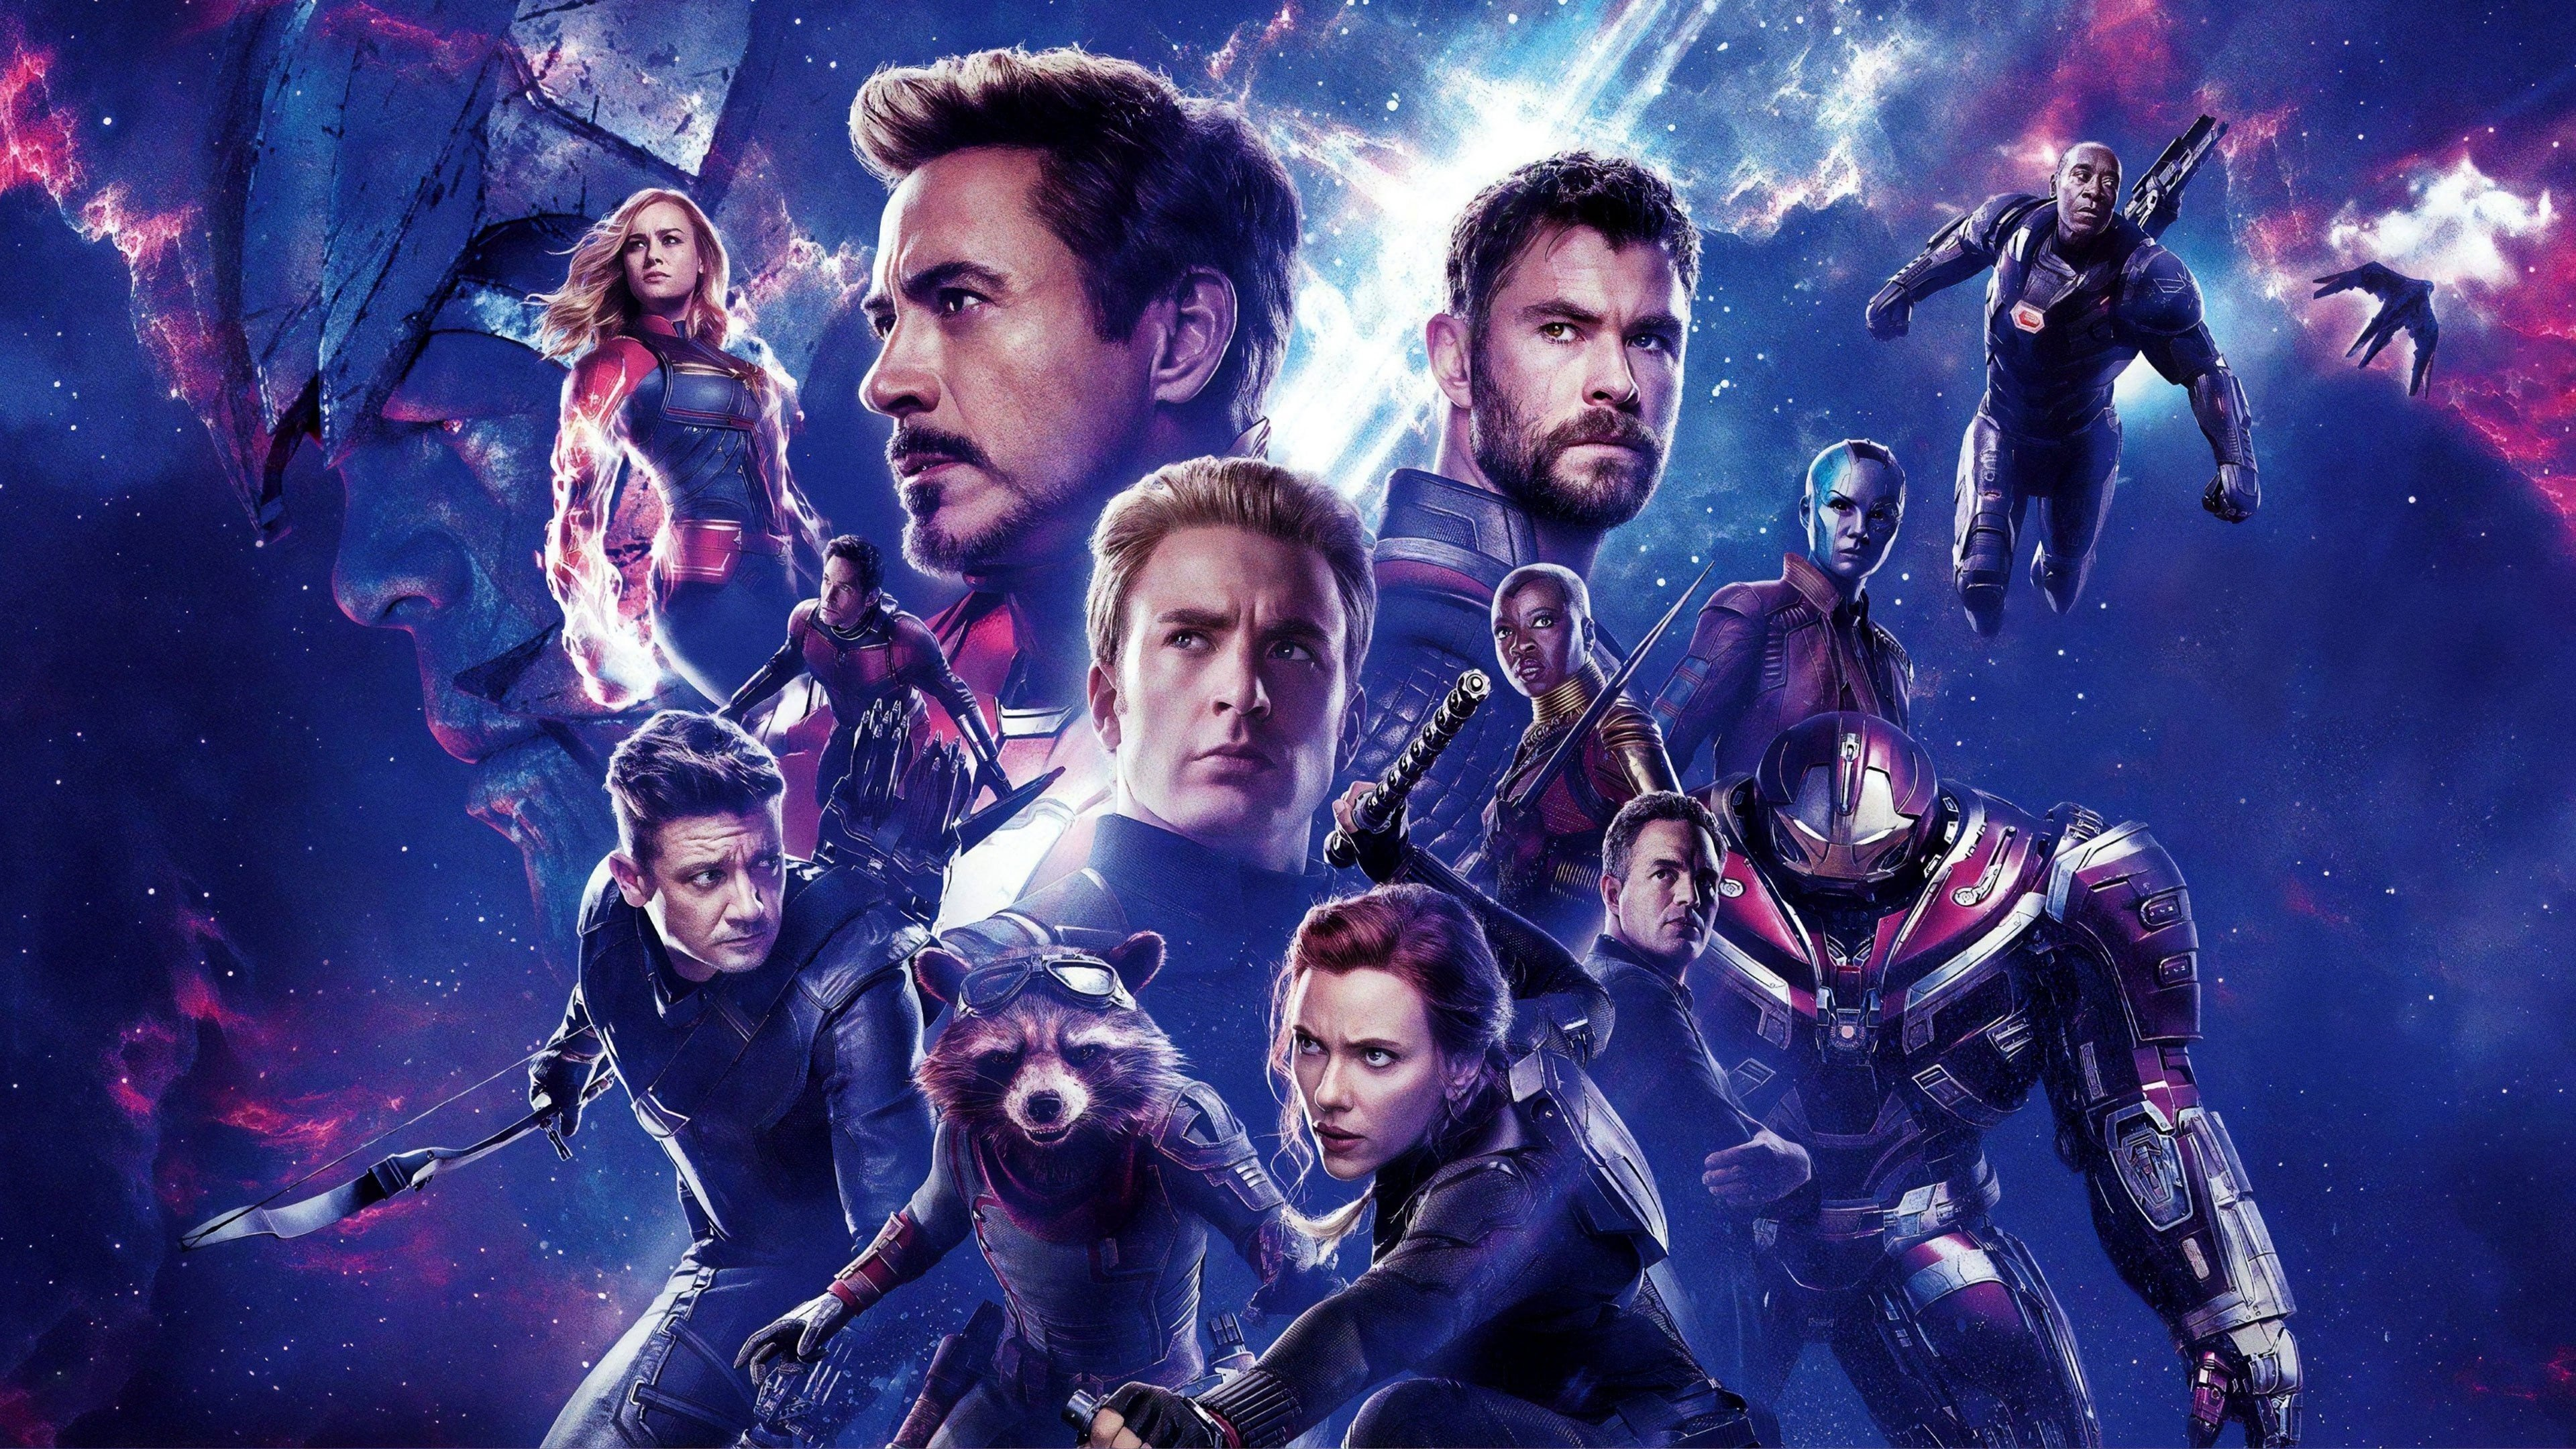 Avengers: End game (2019)